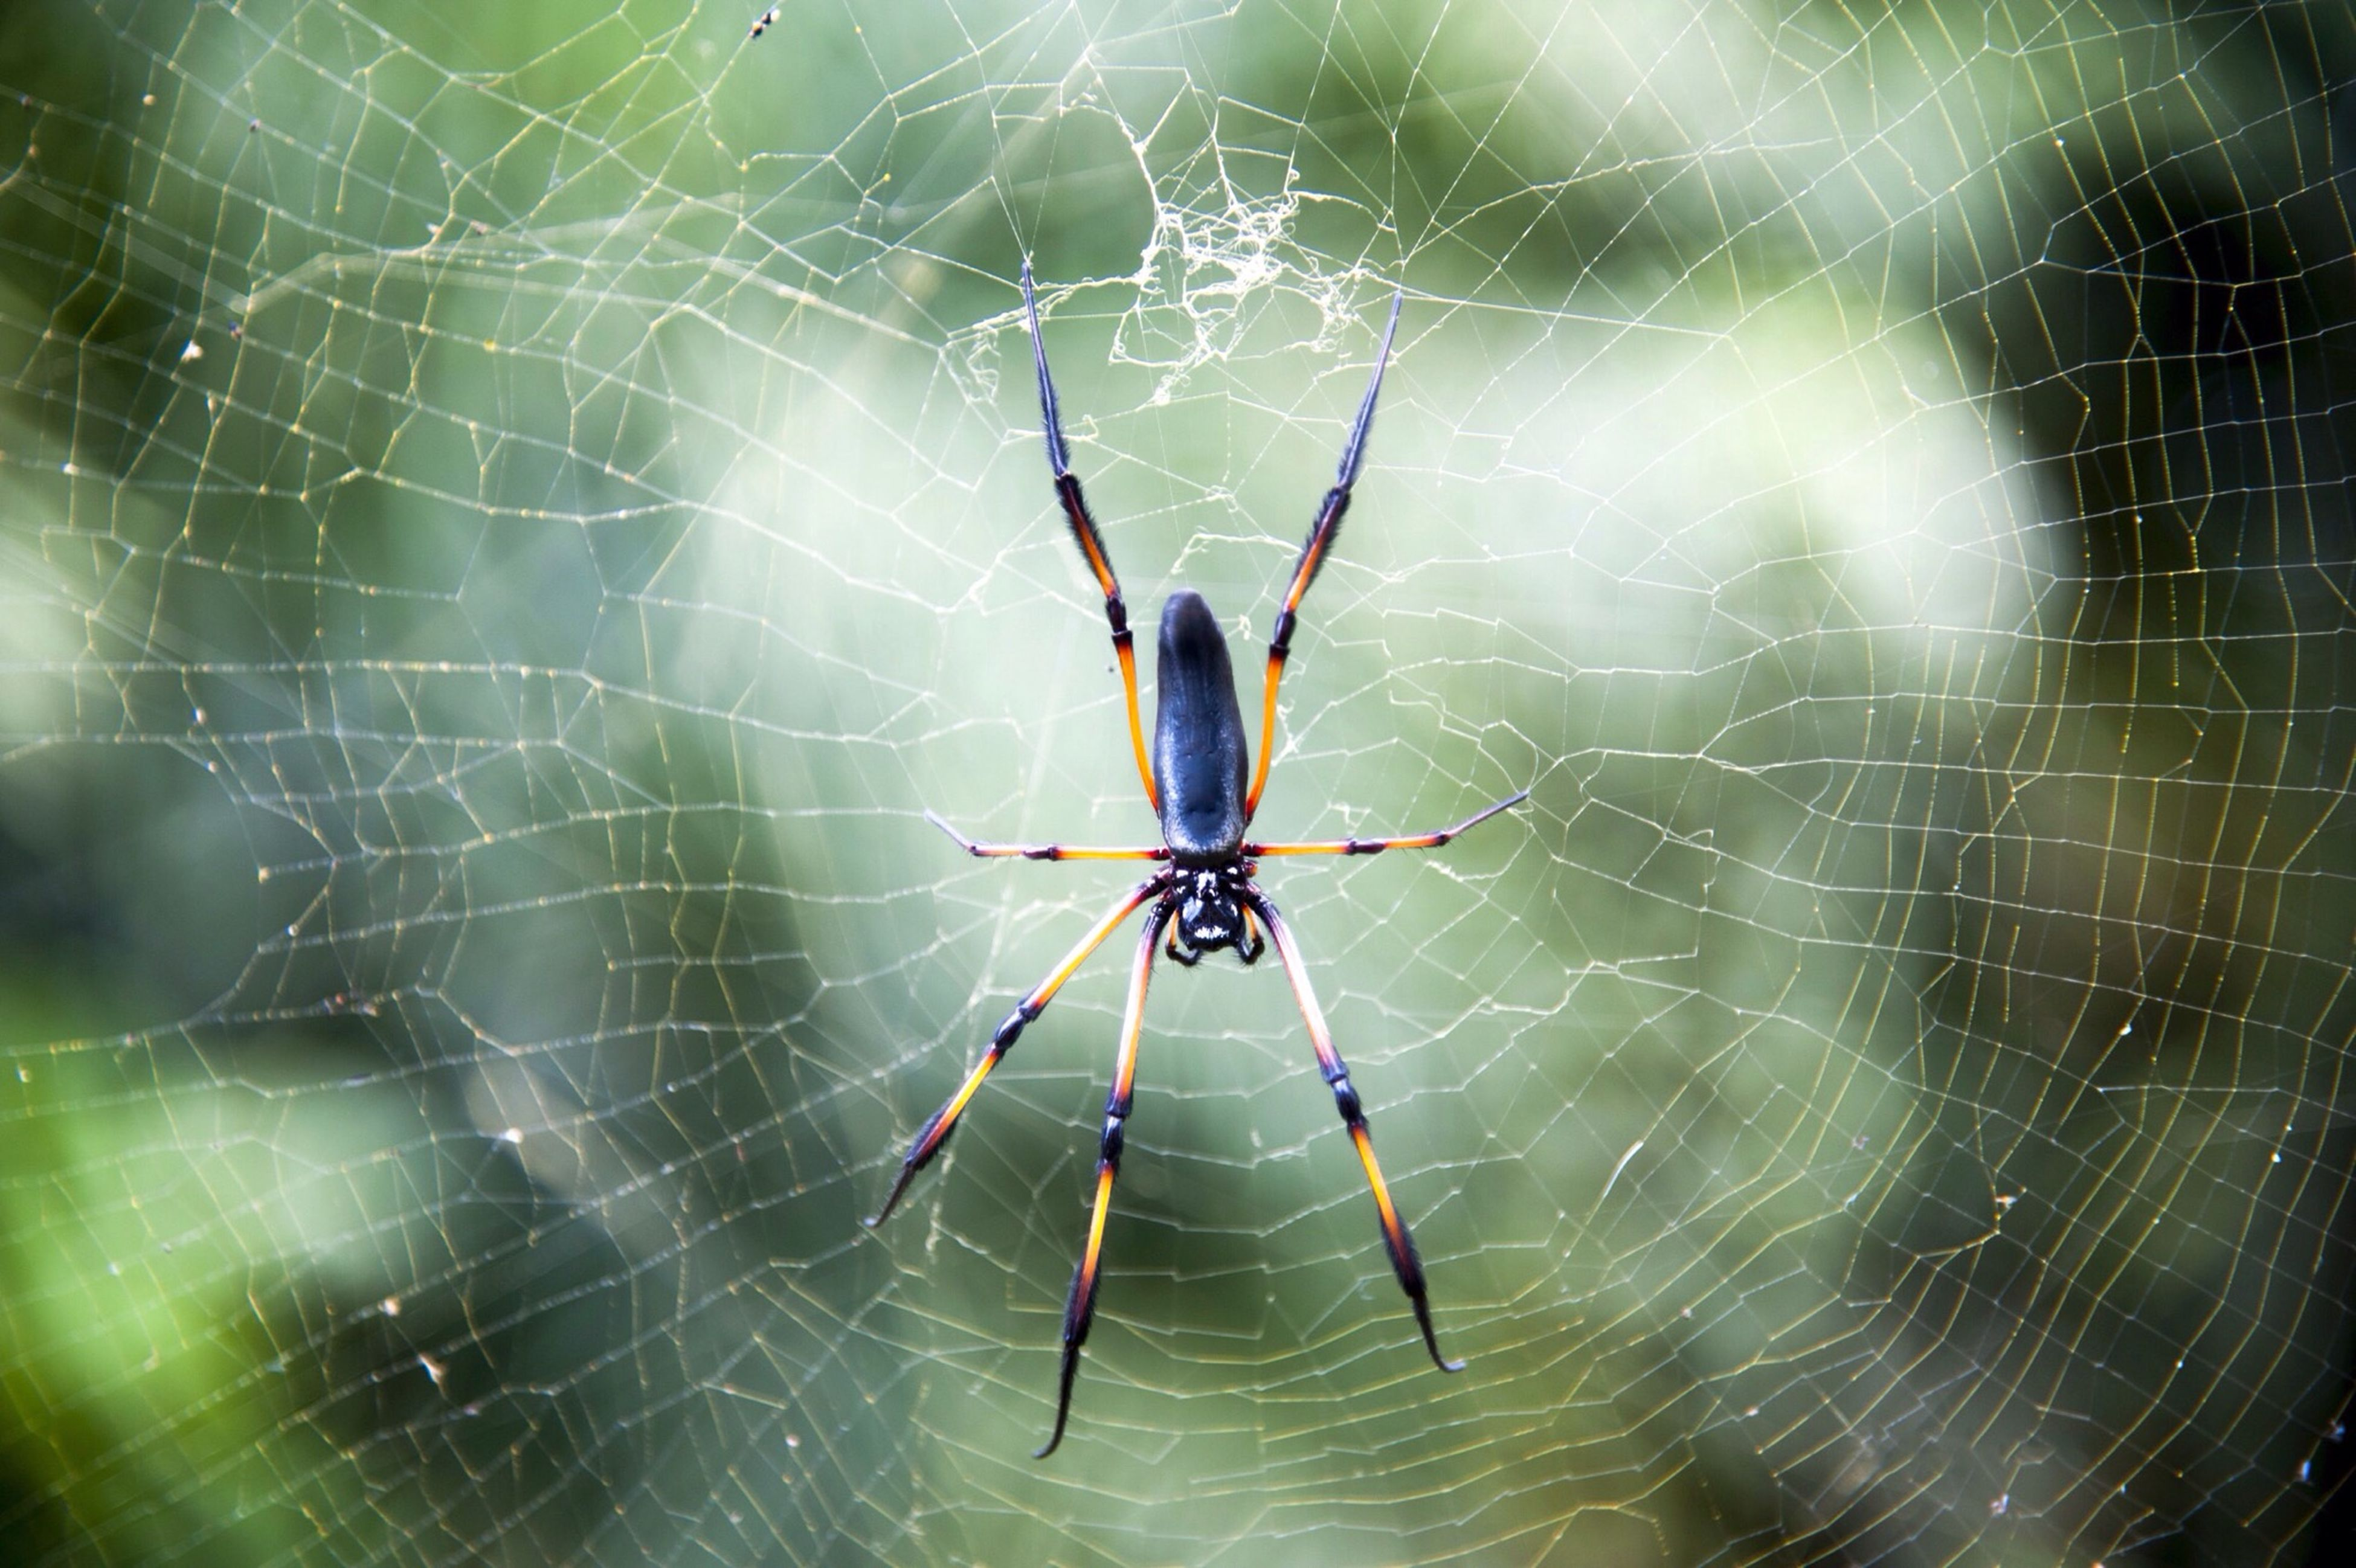 spider web, spider, animal themes, one animal, insect, animals in the wild, wildlife, spinning, web, focus on foreground, close-up, natural pattern, arachnid, nature, survival, outdoors, complexity, no people, pattern, day